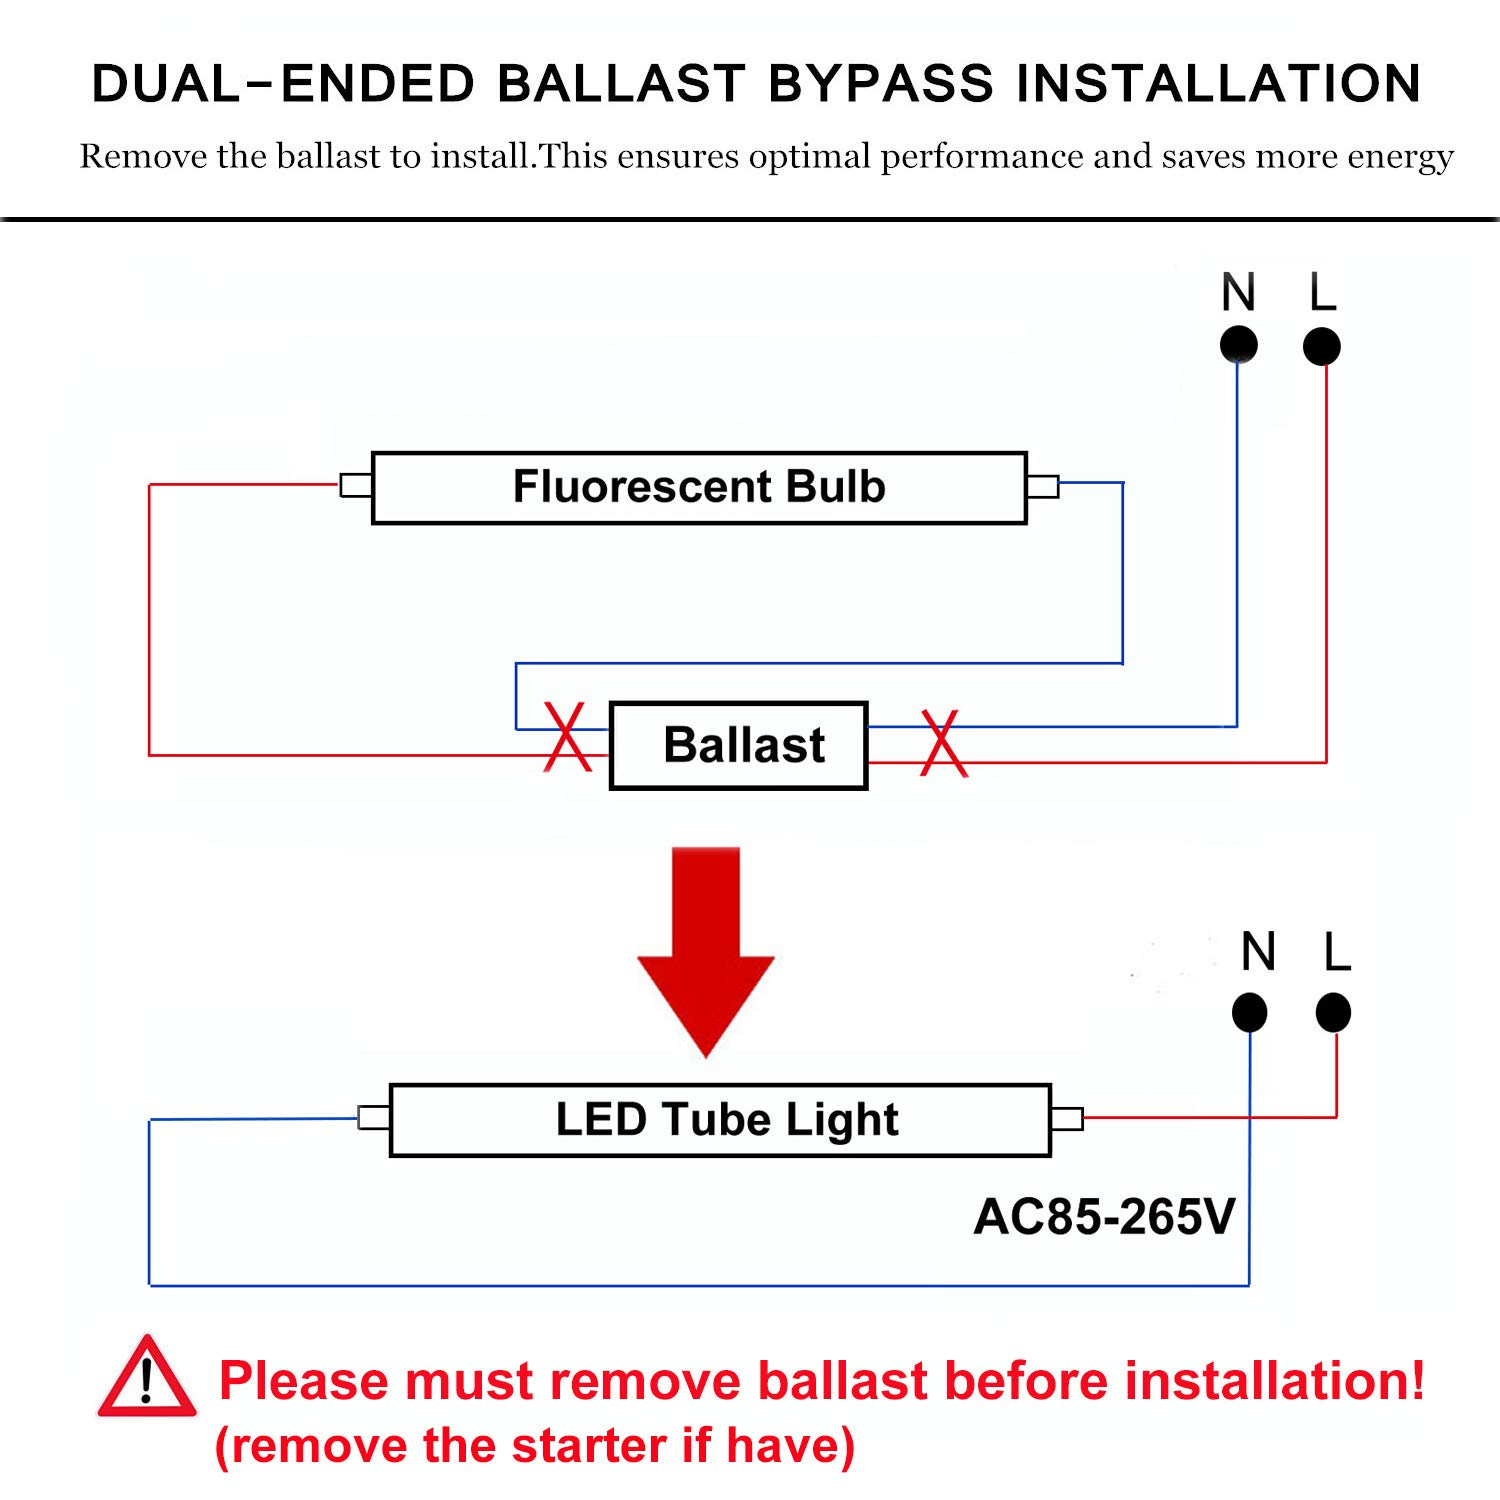 Wiring A Ballast Bypass Fluorescent Light Great Installation Of T8 Bulbs Diagram Cnsunway Lighting T10 T12 Led Tube 8ft 45w 100w Rh Amazon Com Electronic